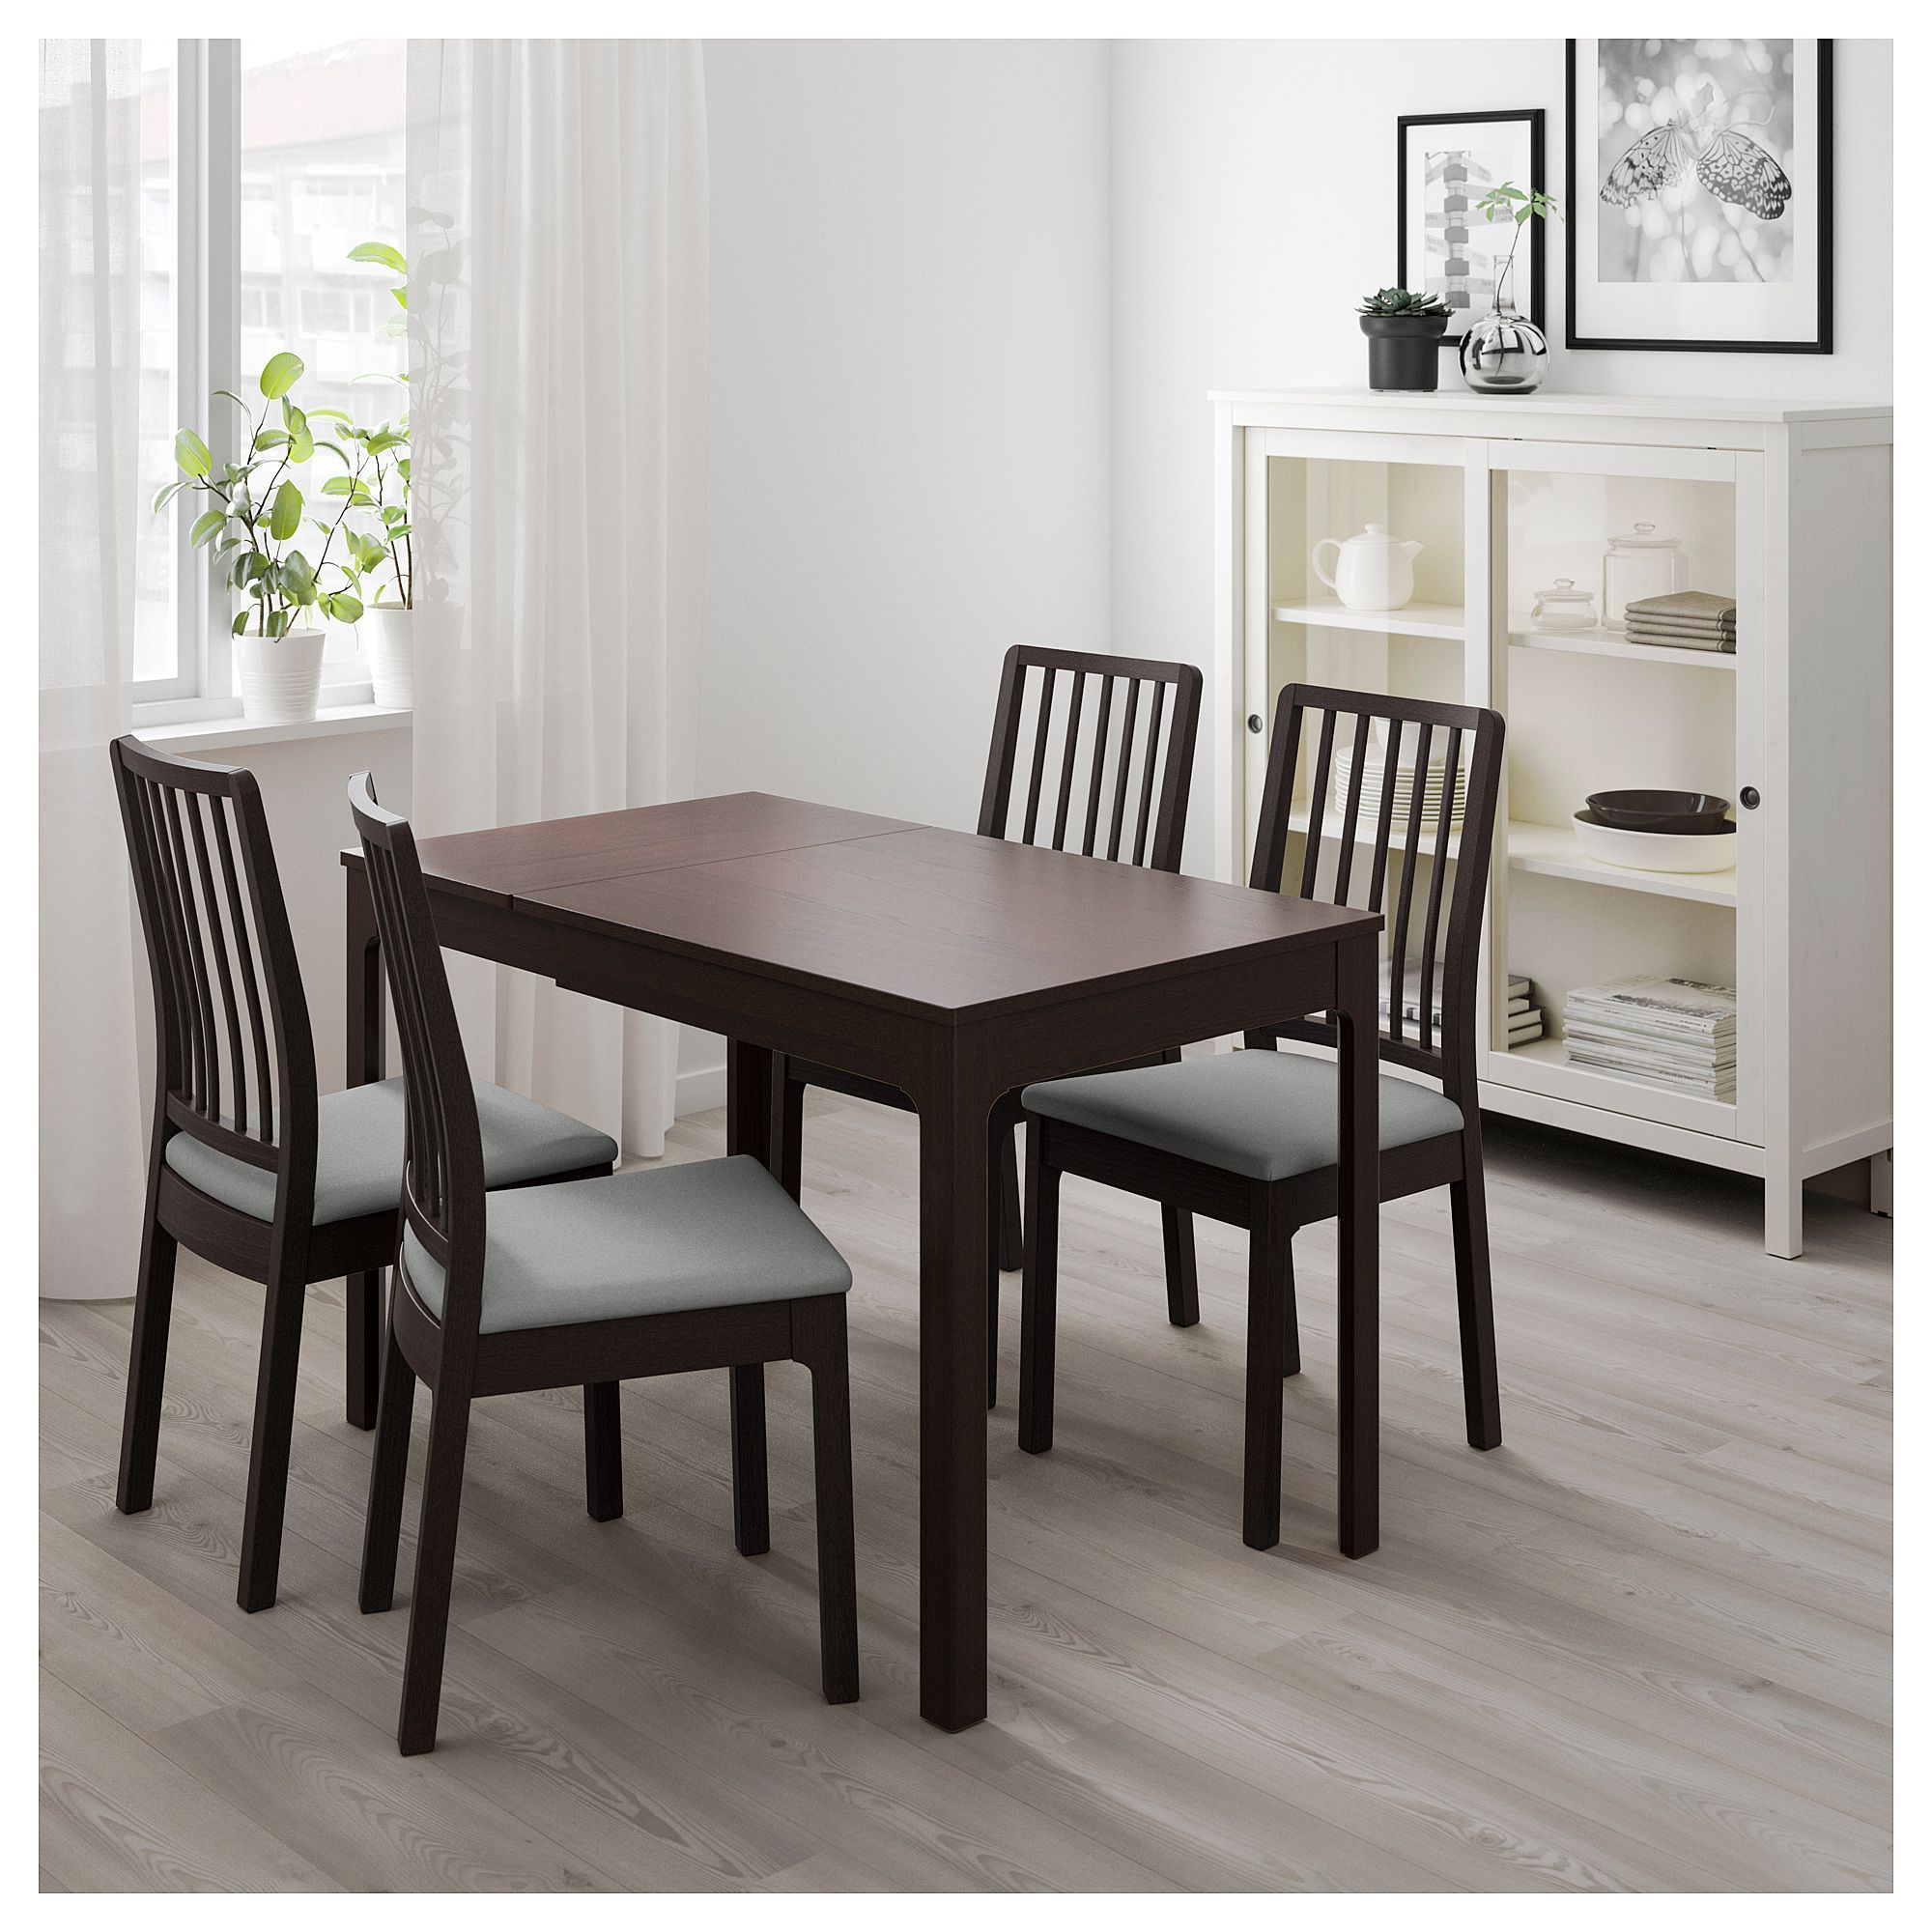 Ikea Us Furniture And Home Furnishings Ikea Extendable Table Dining Table Dining Room Table